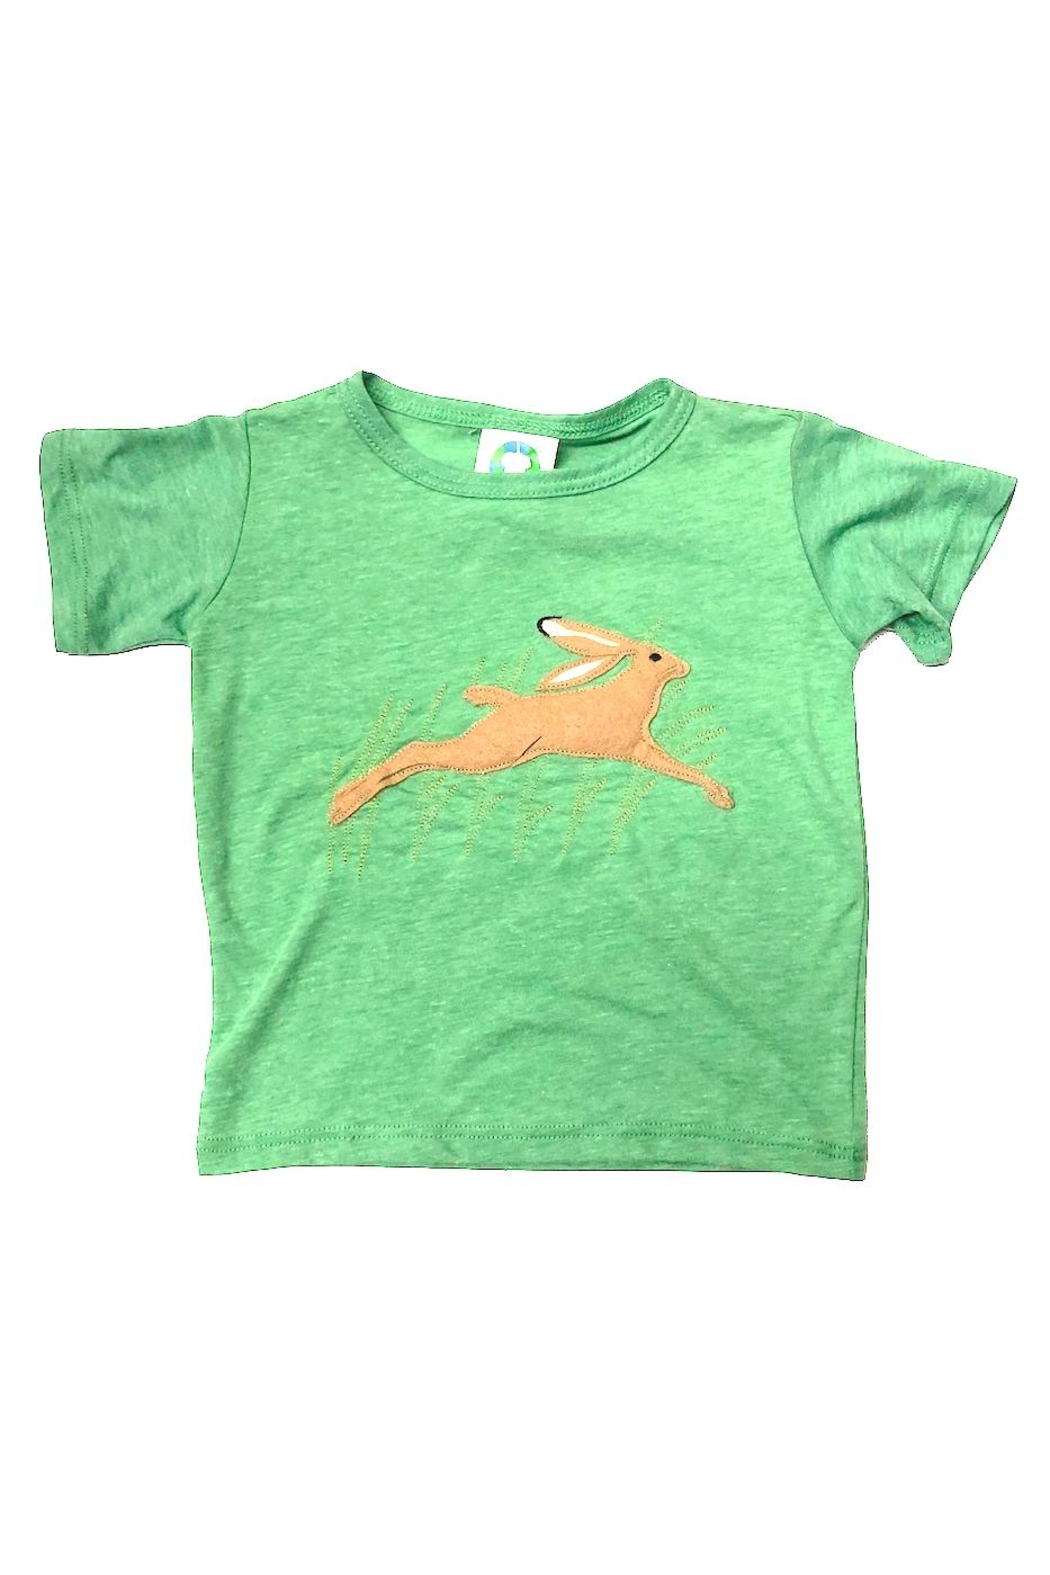 Precious Few on Earth Green Bunny T-Shirt - Front Cropped Image